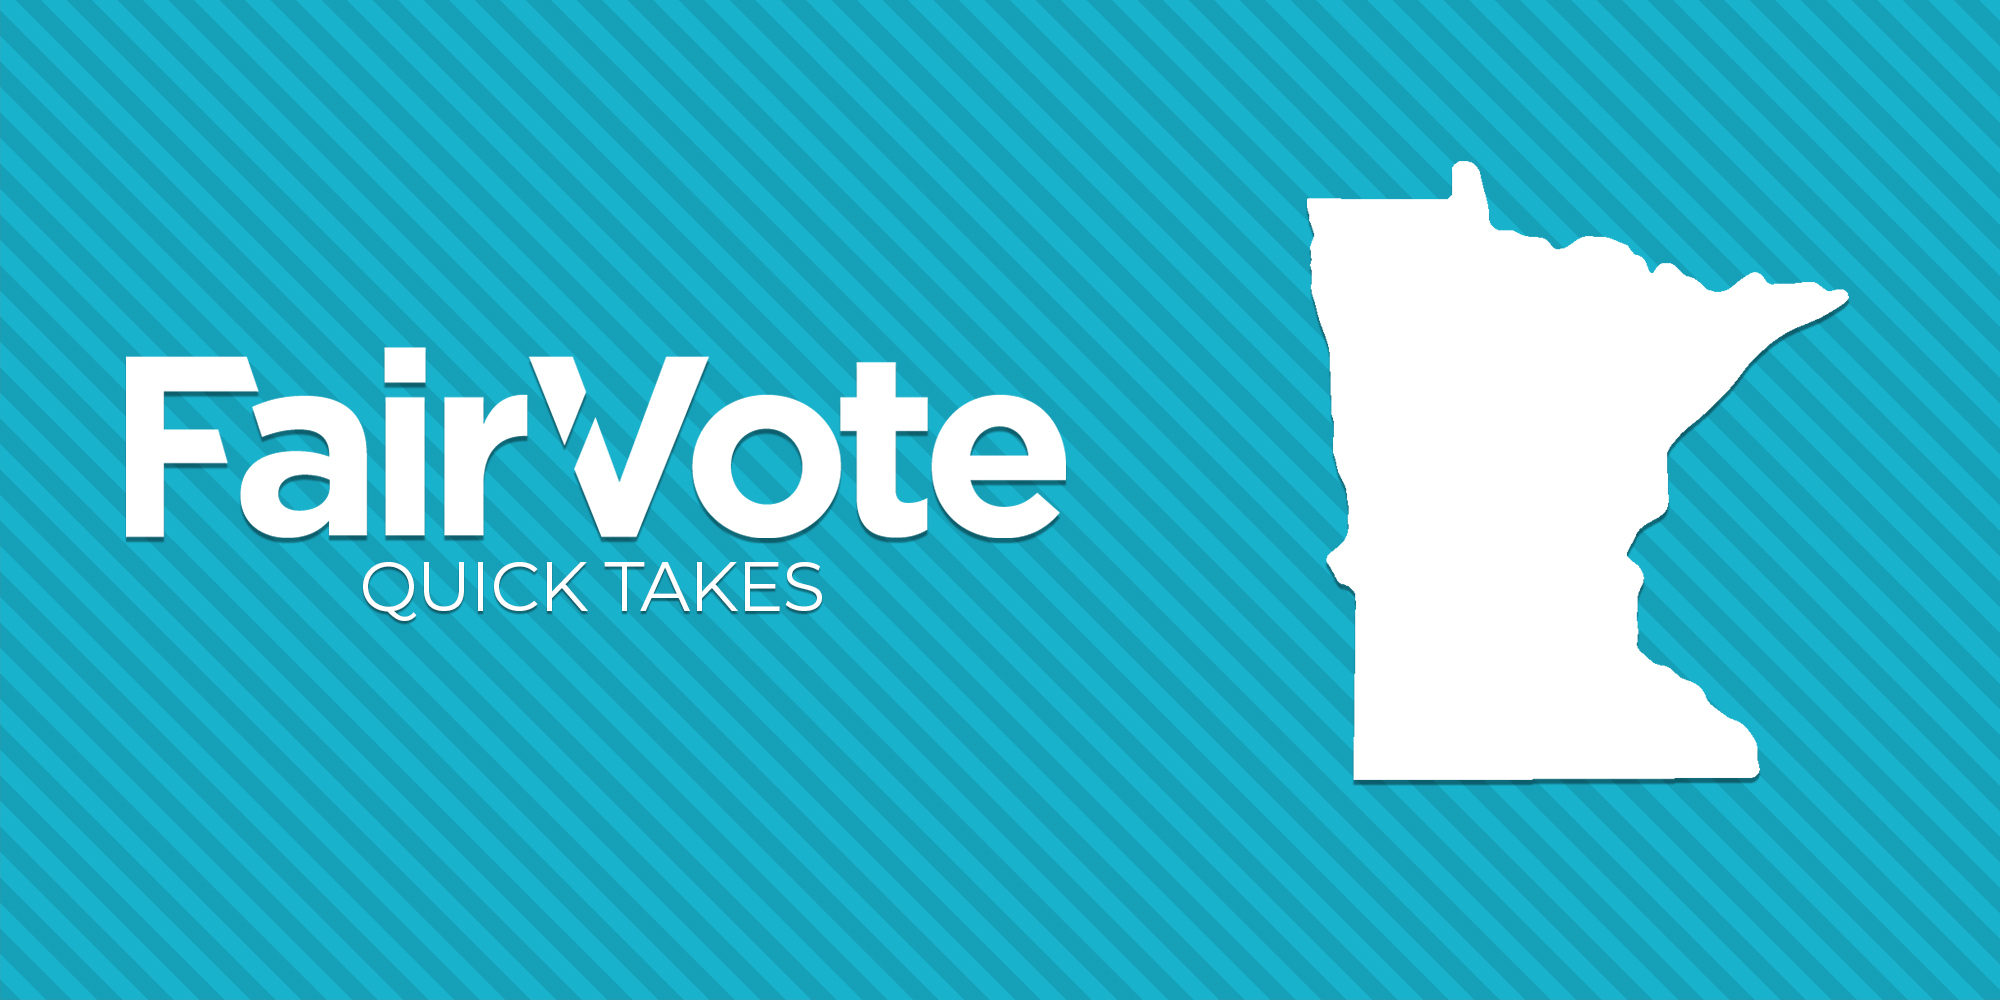 Minnetonka becomes second Minnesota city to hold RCV referendum this year